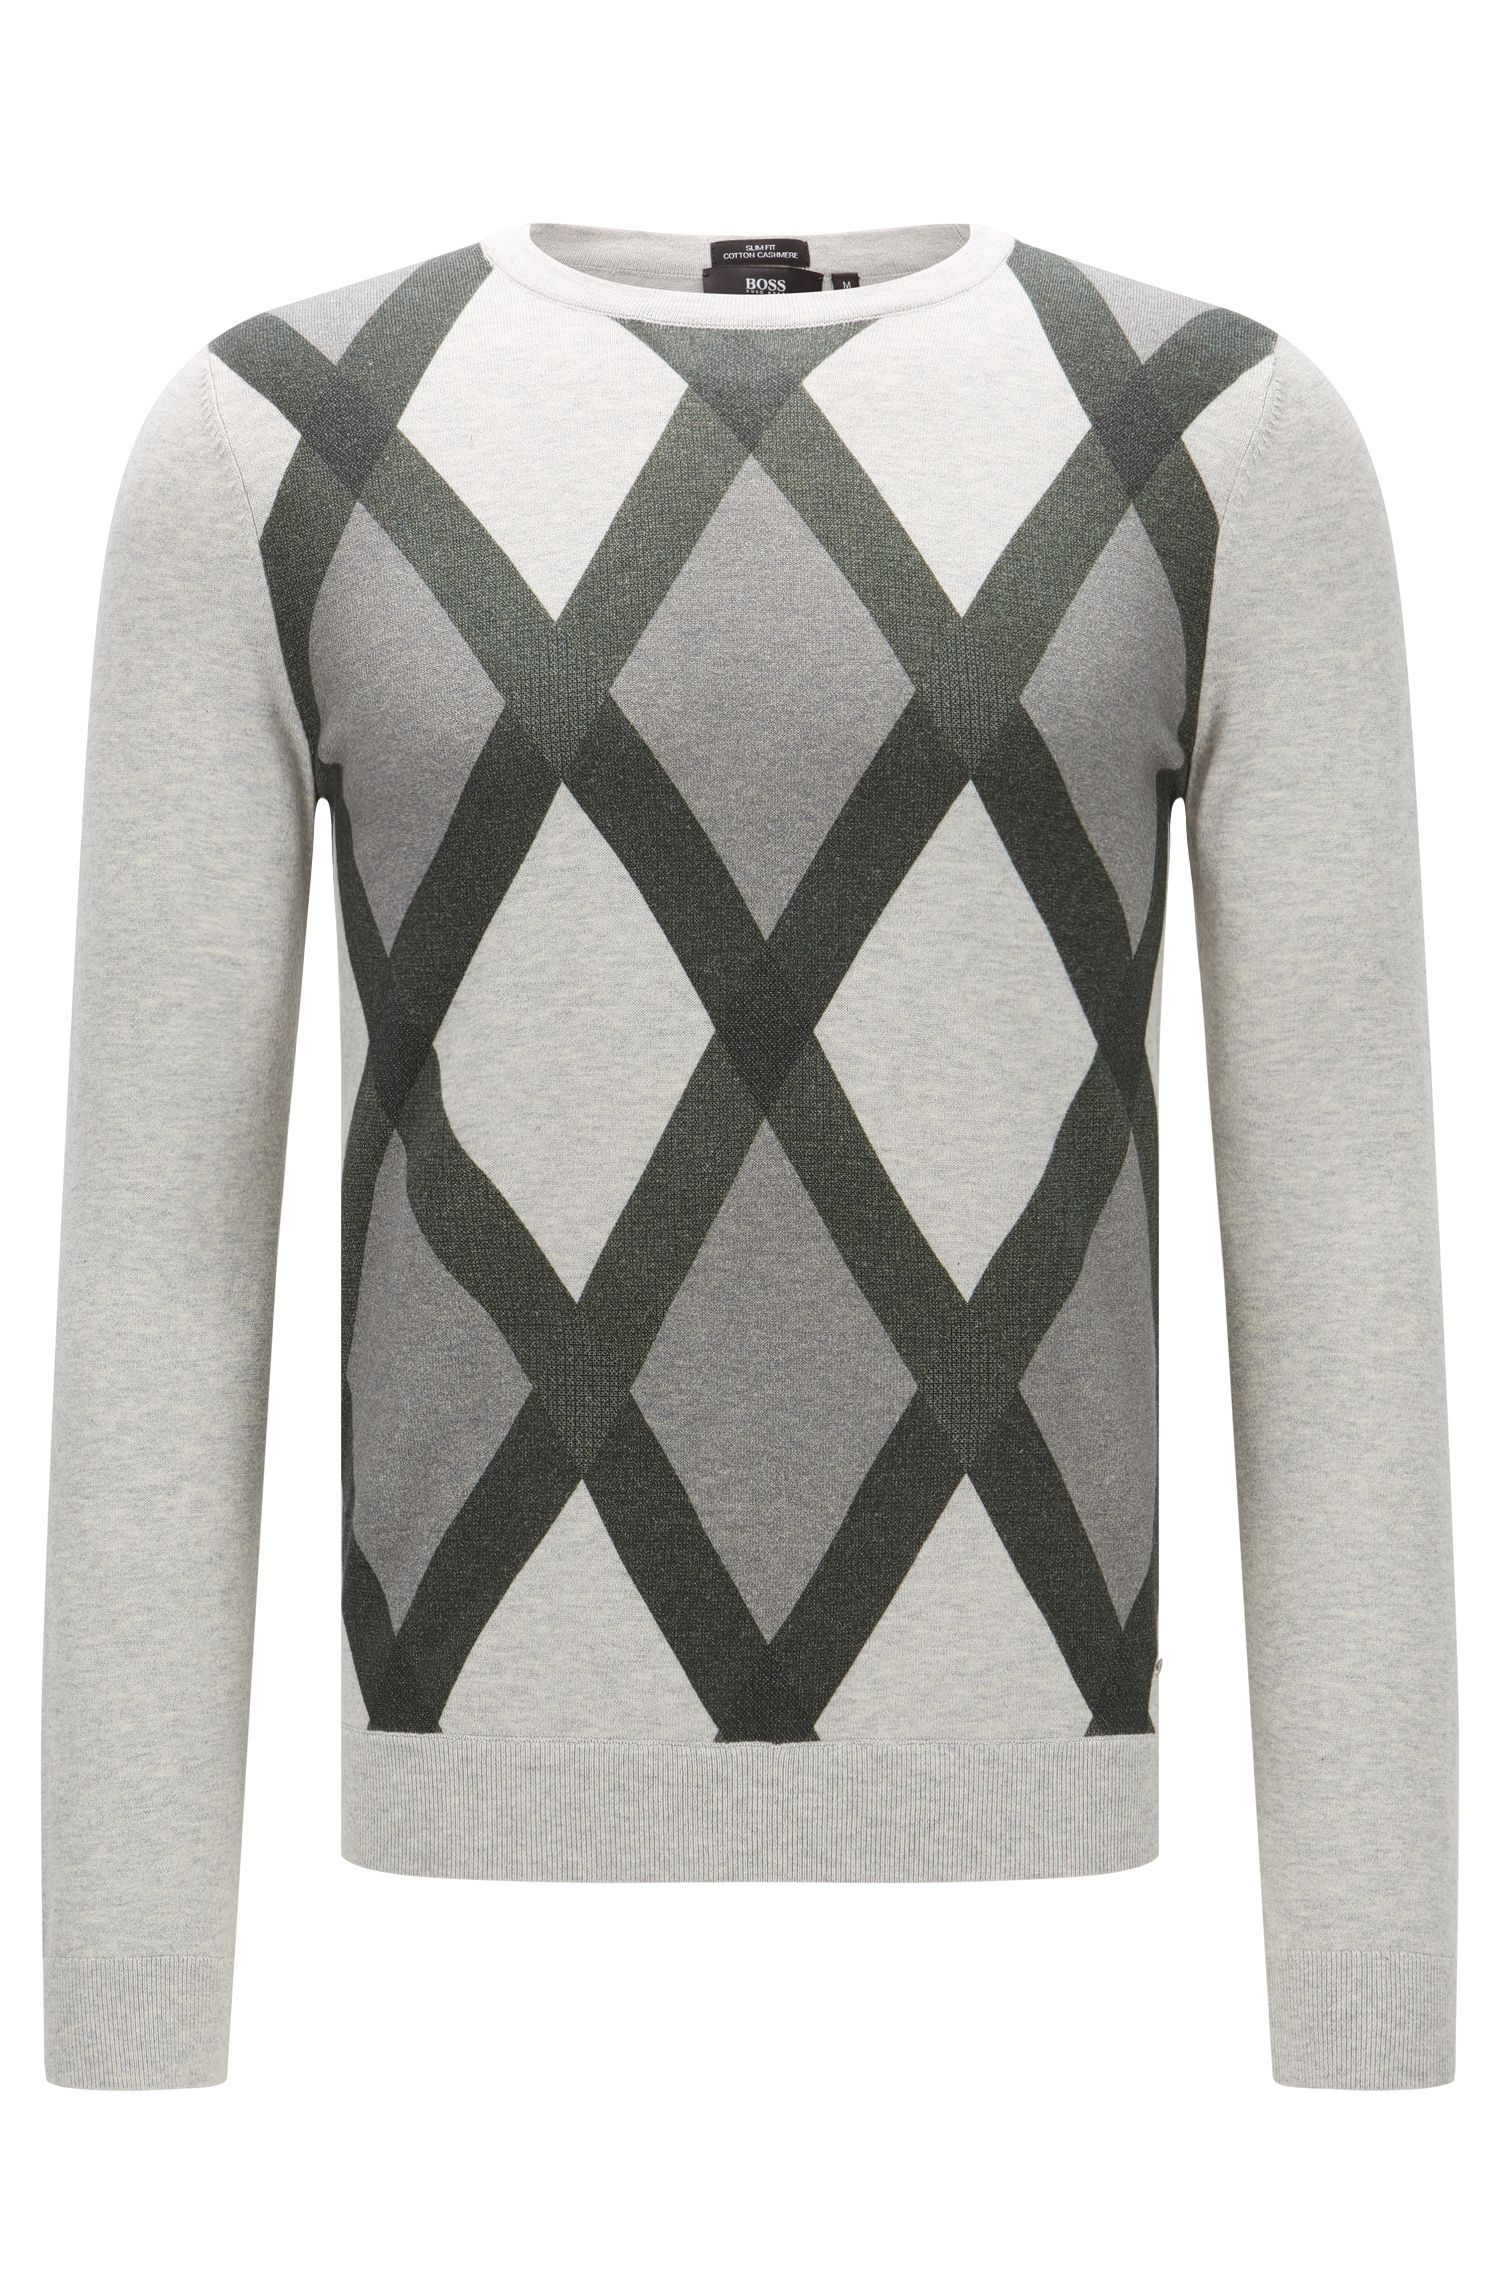 'Niras' | Argyle Cotton Cashmere Sweater